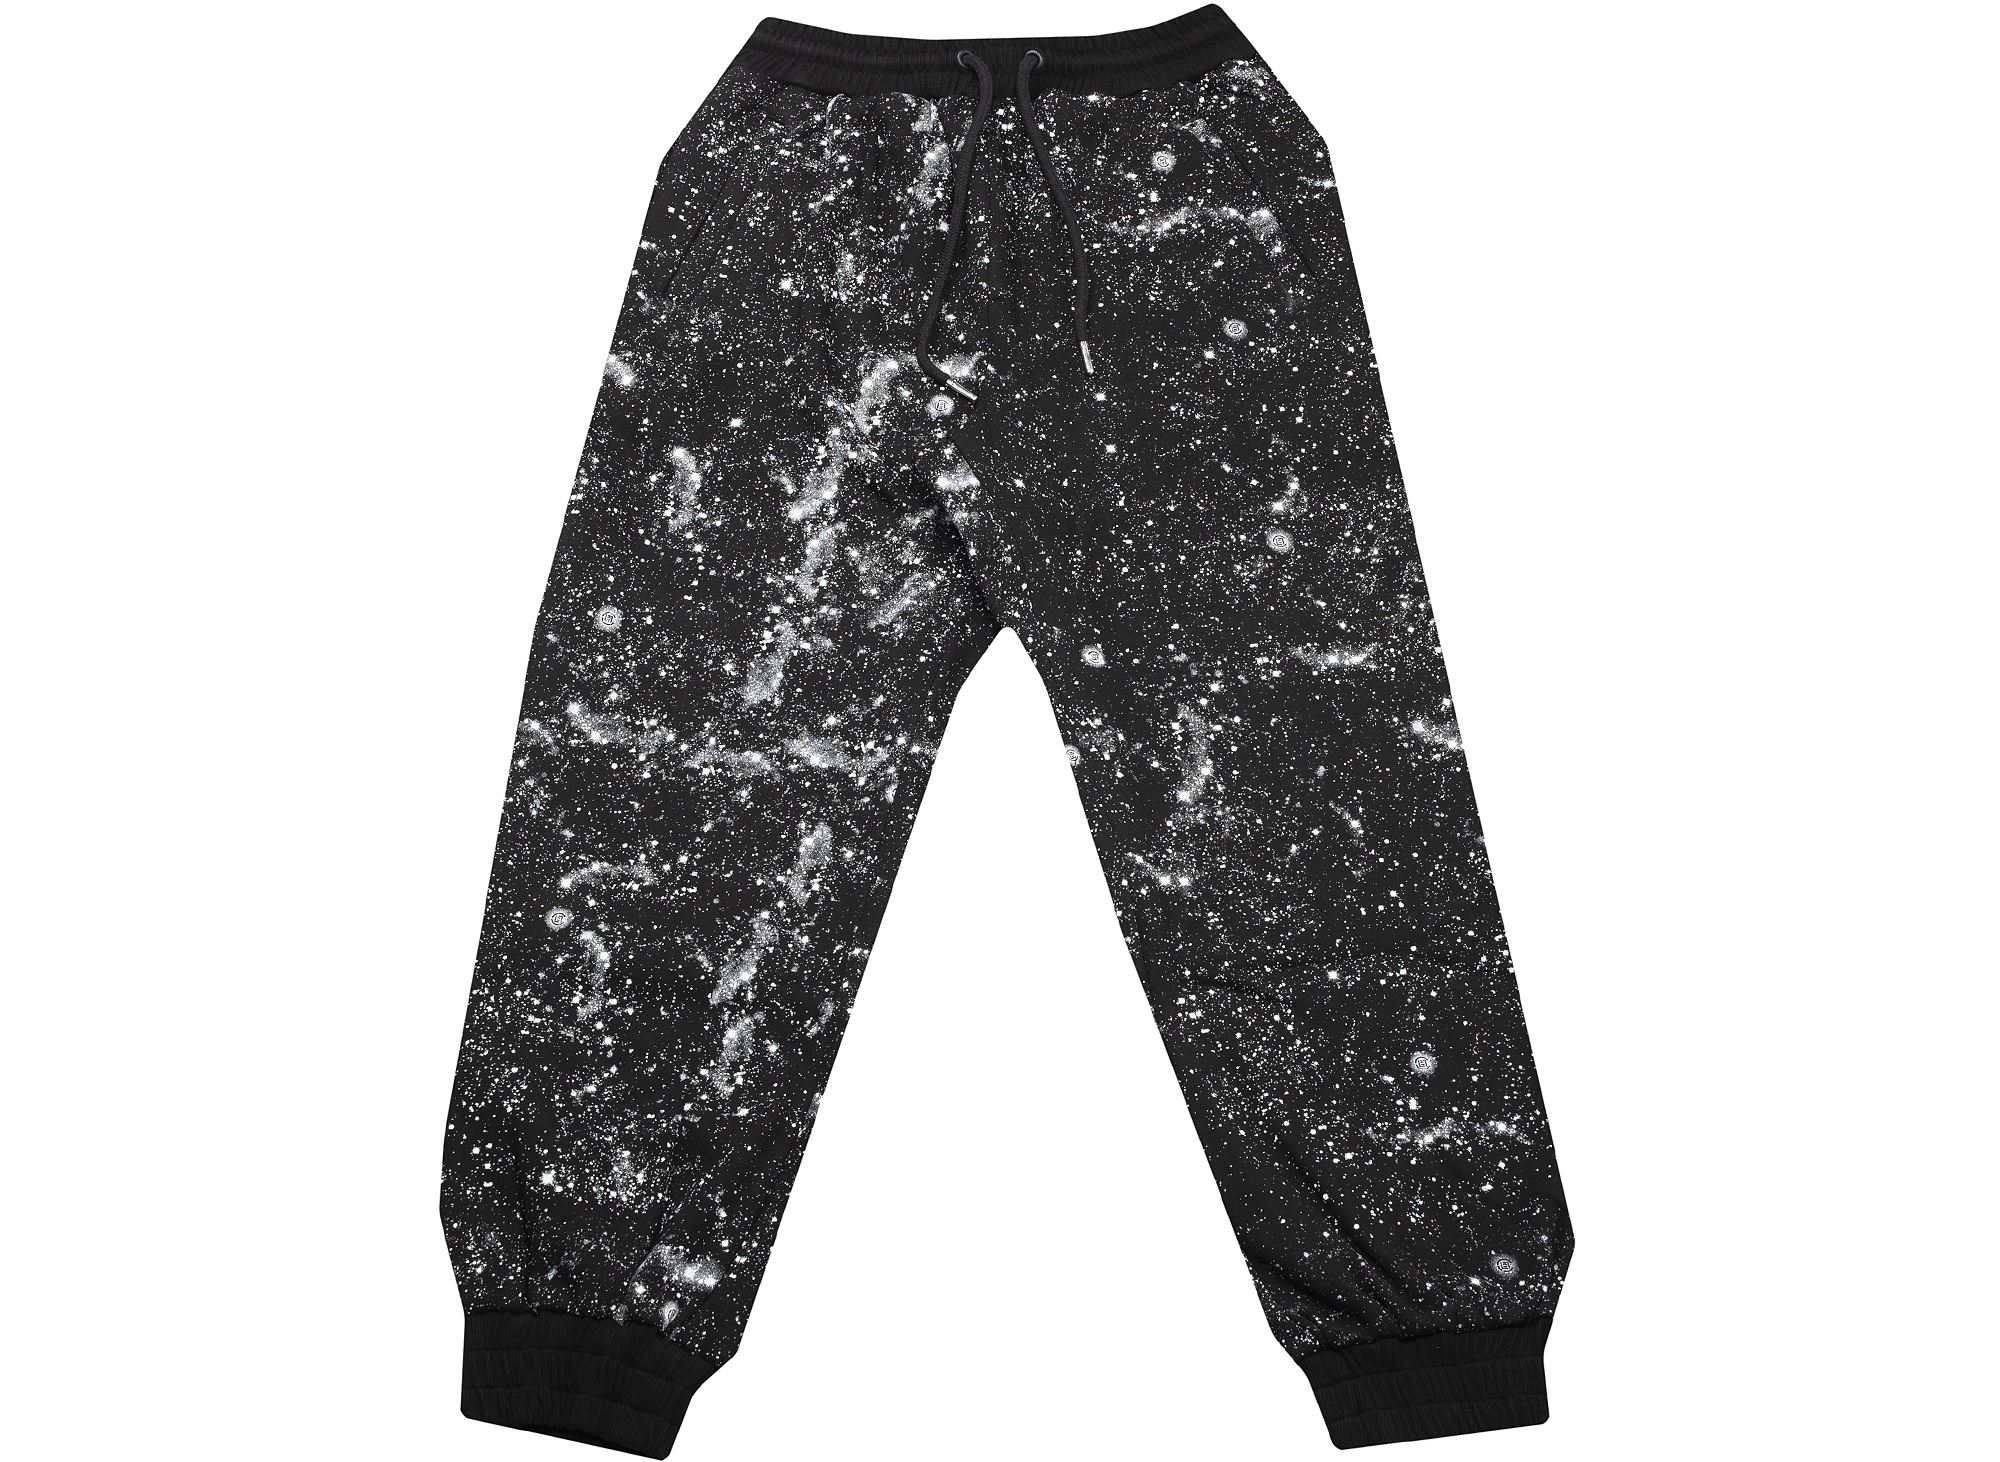 Clot Stars All Over Sweatpants in Black